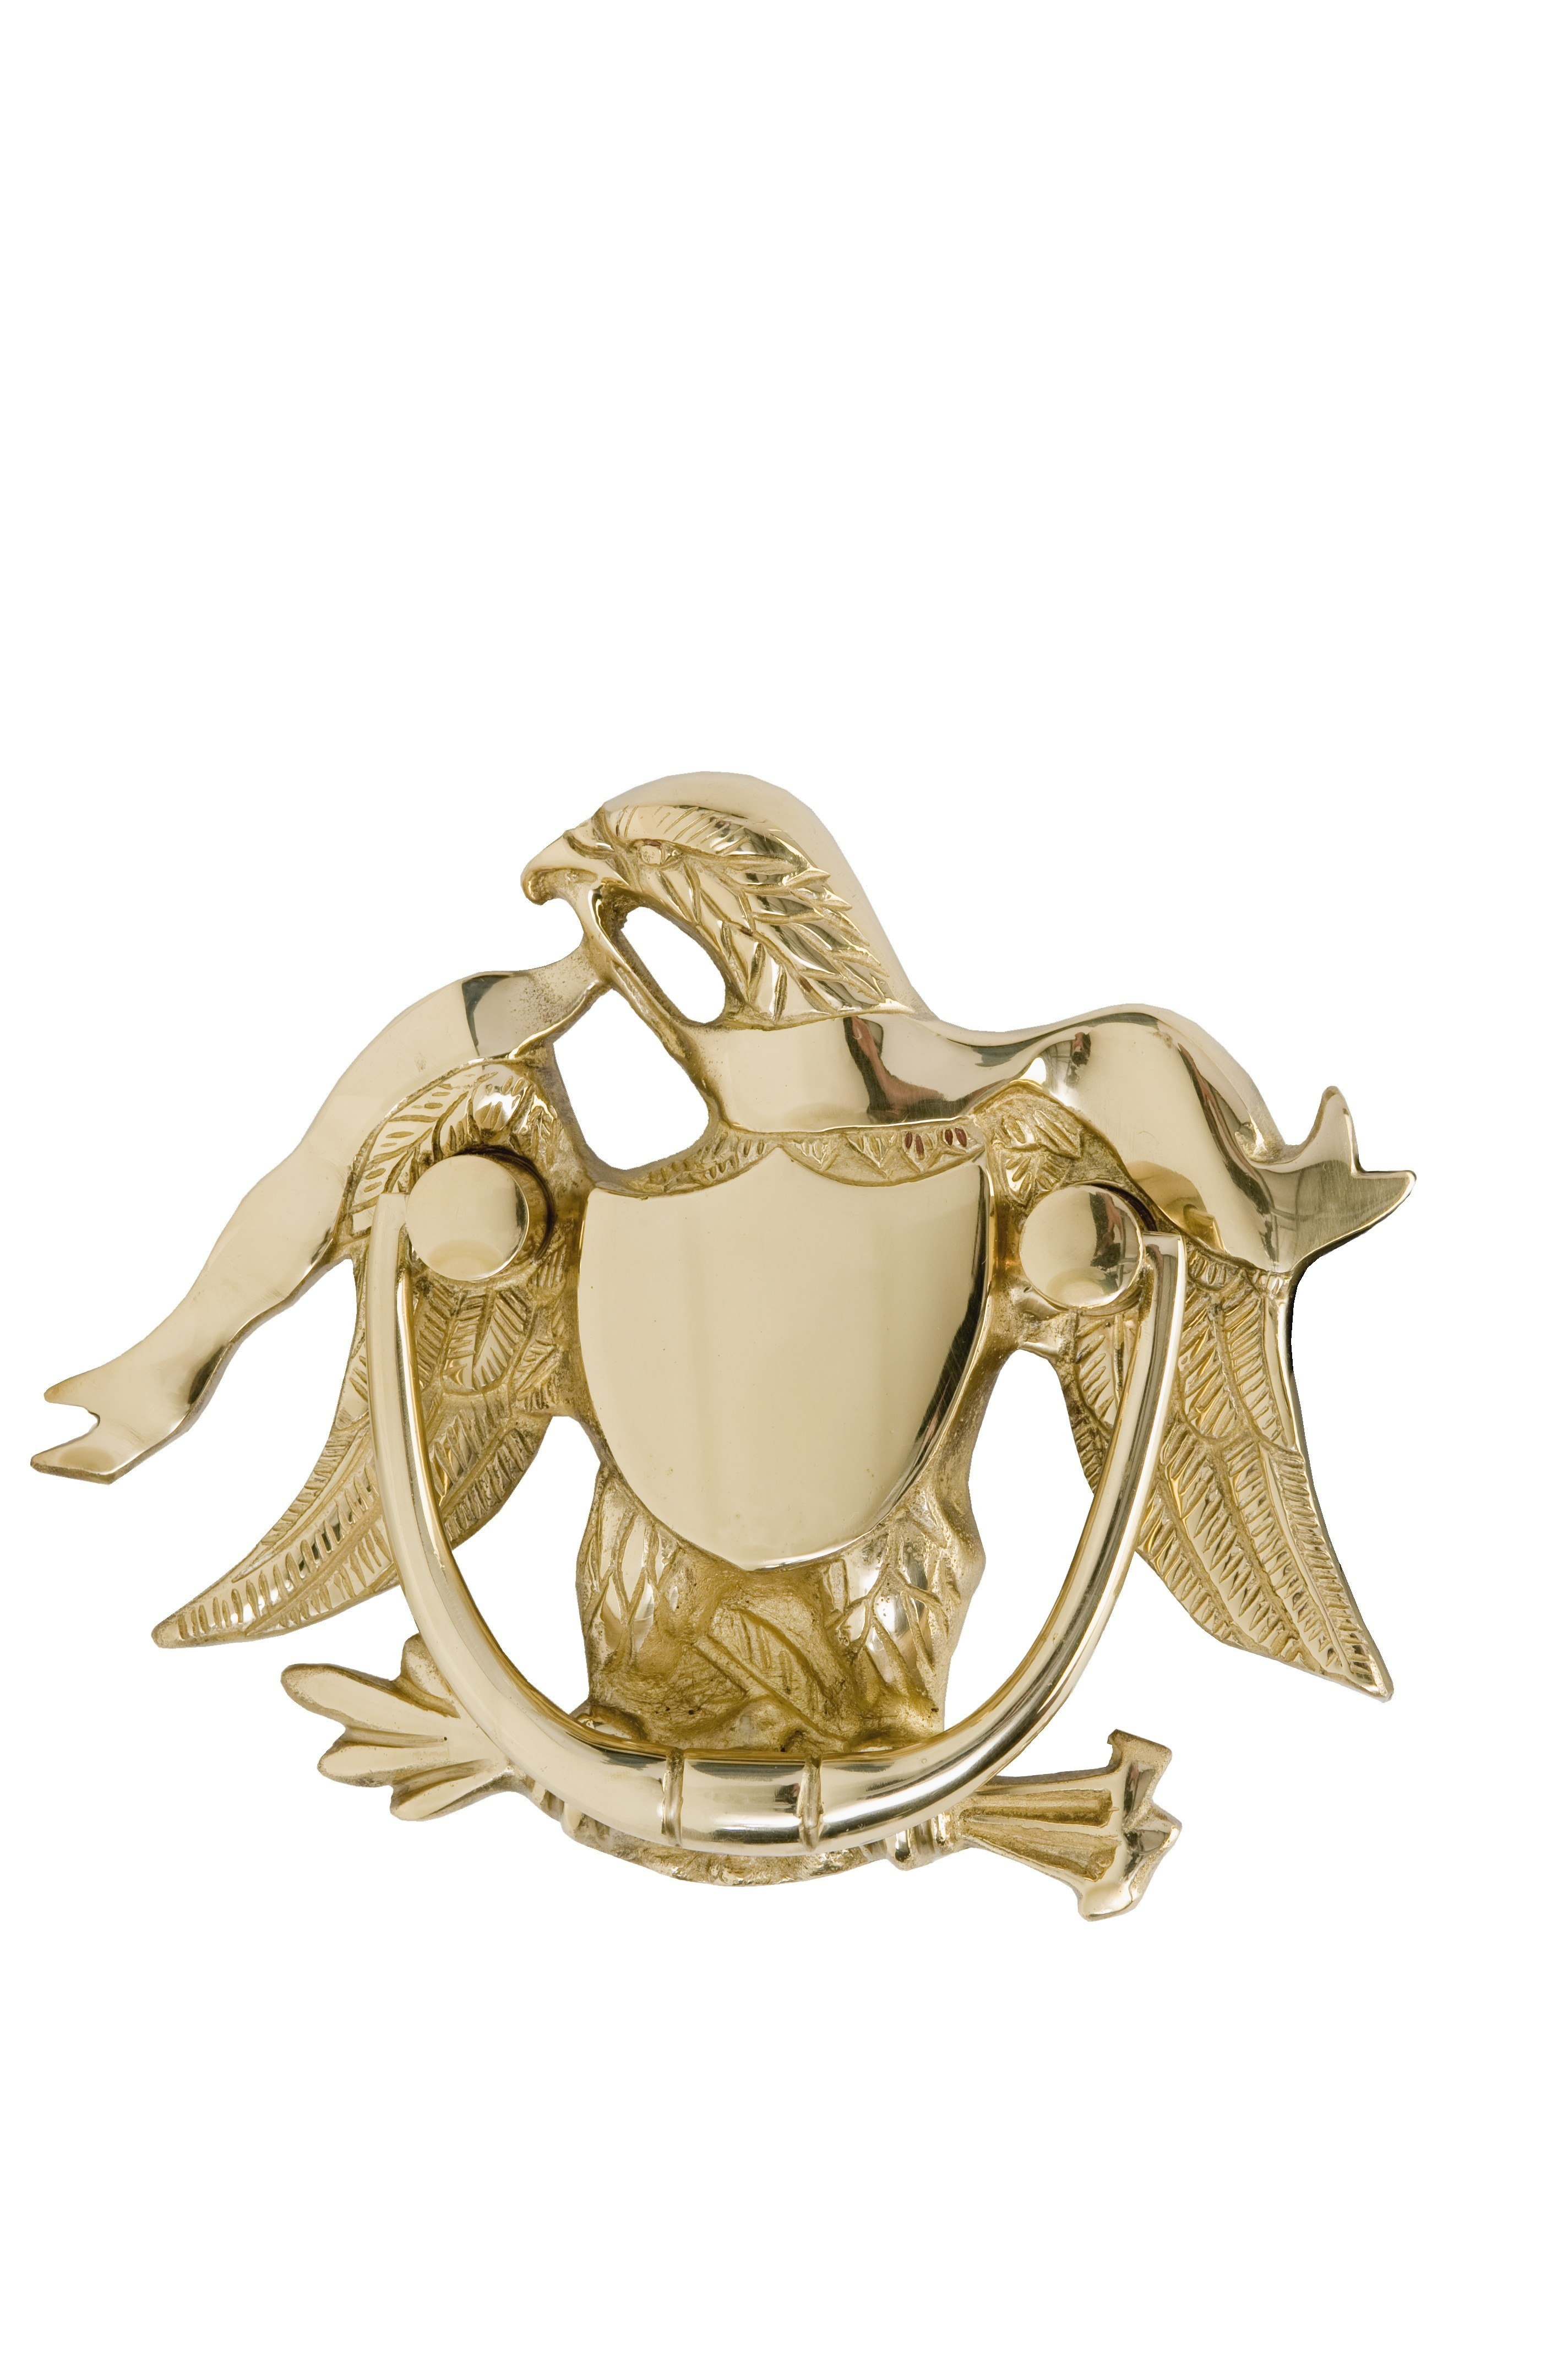 BRASS Accents A04-K2000 Eagle Door Knocker 5-7/8 Inches